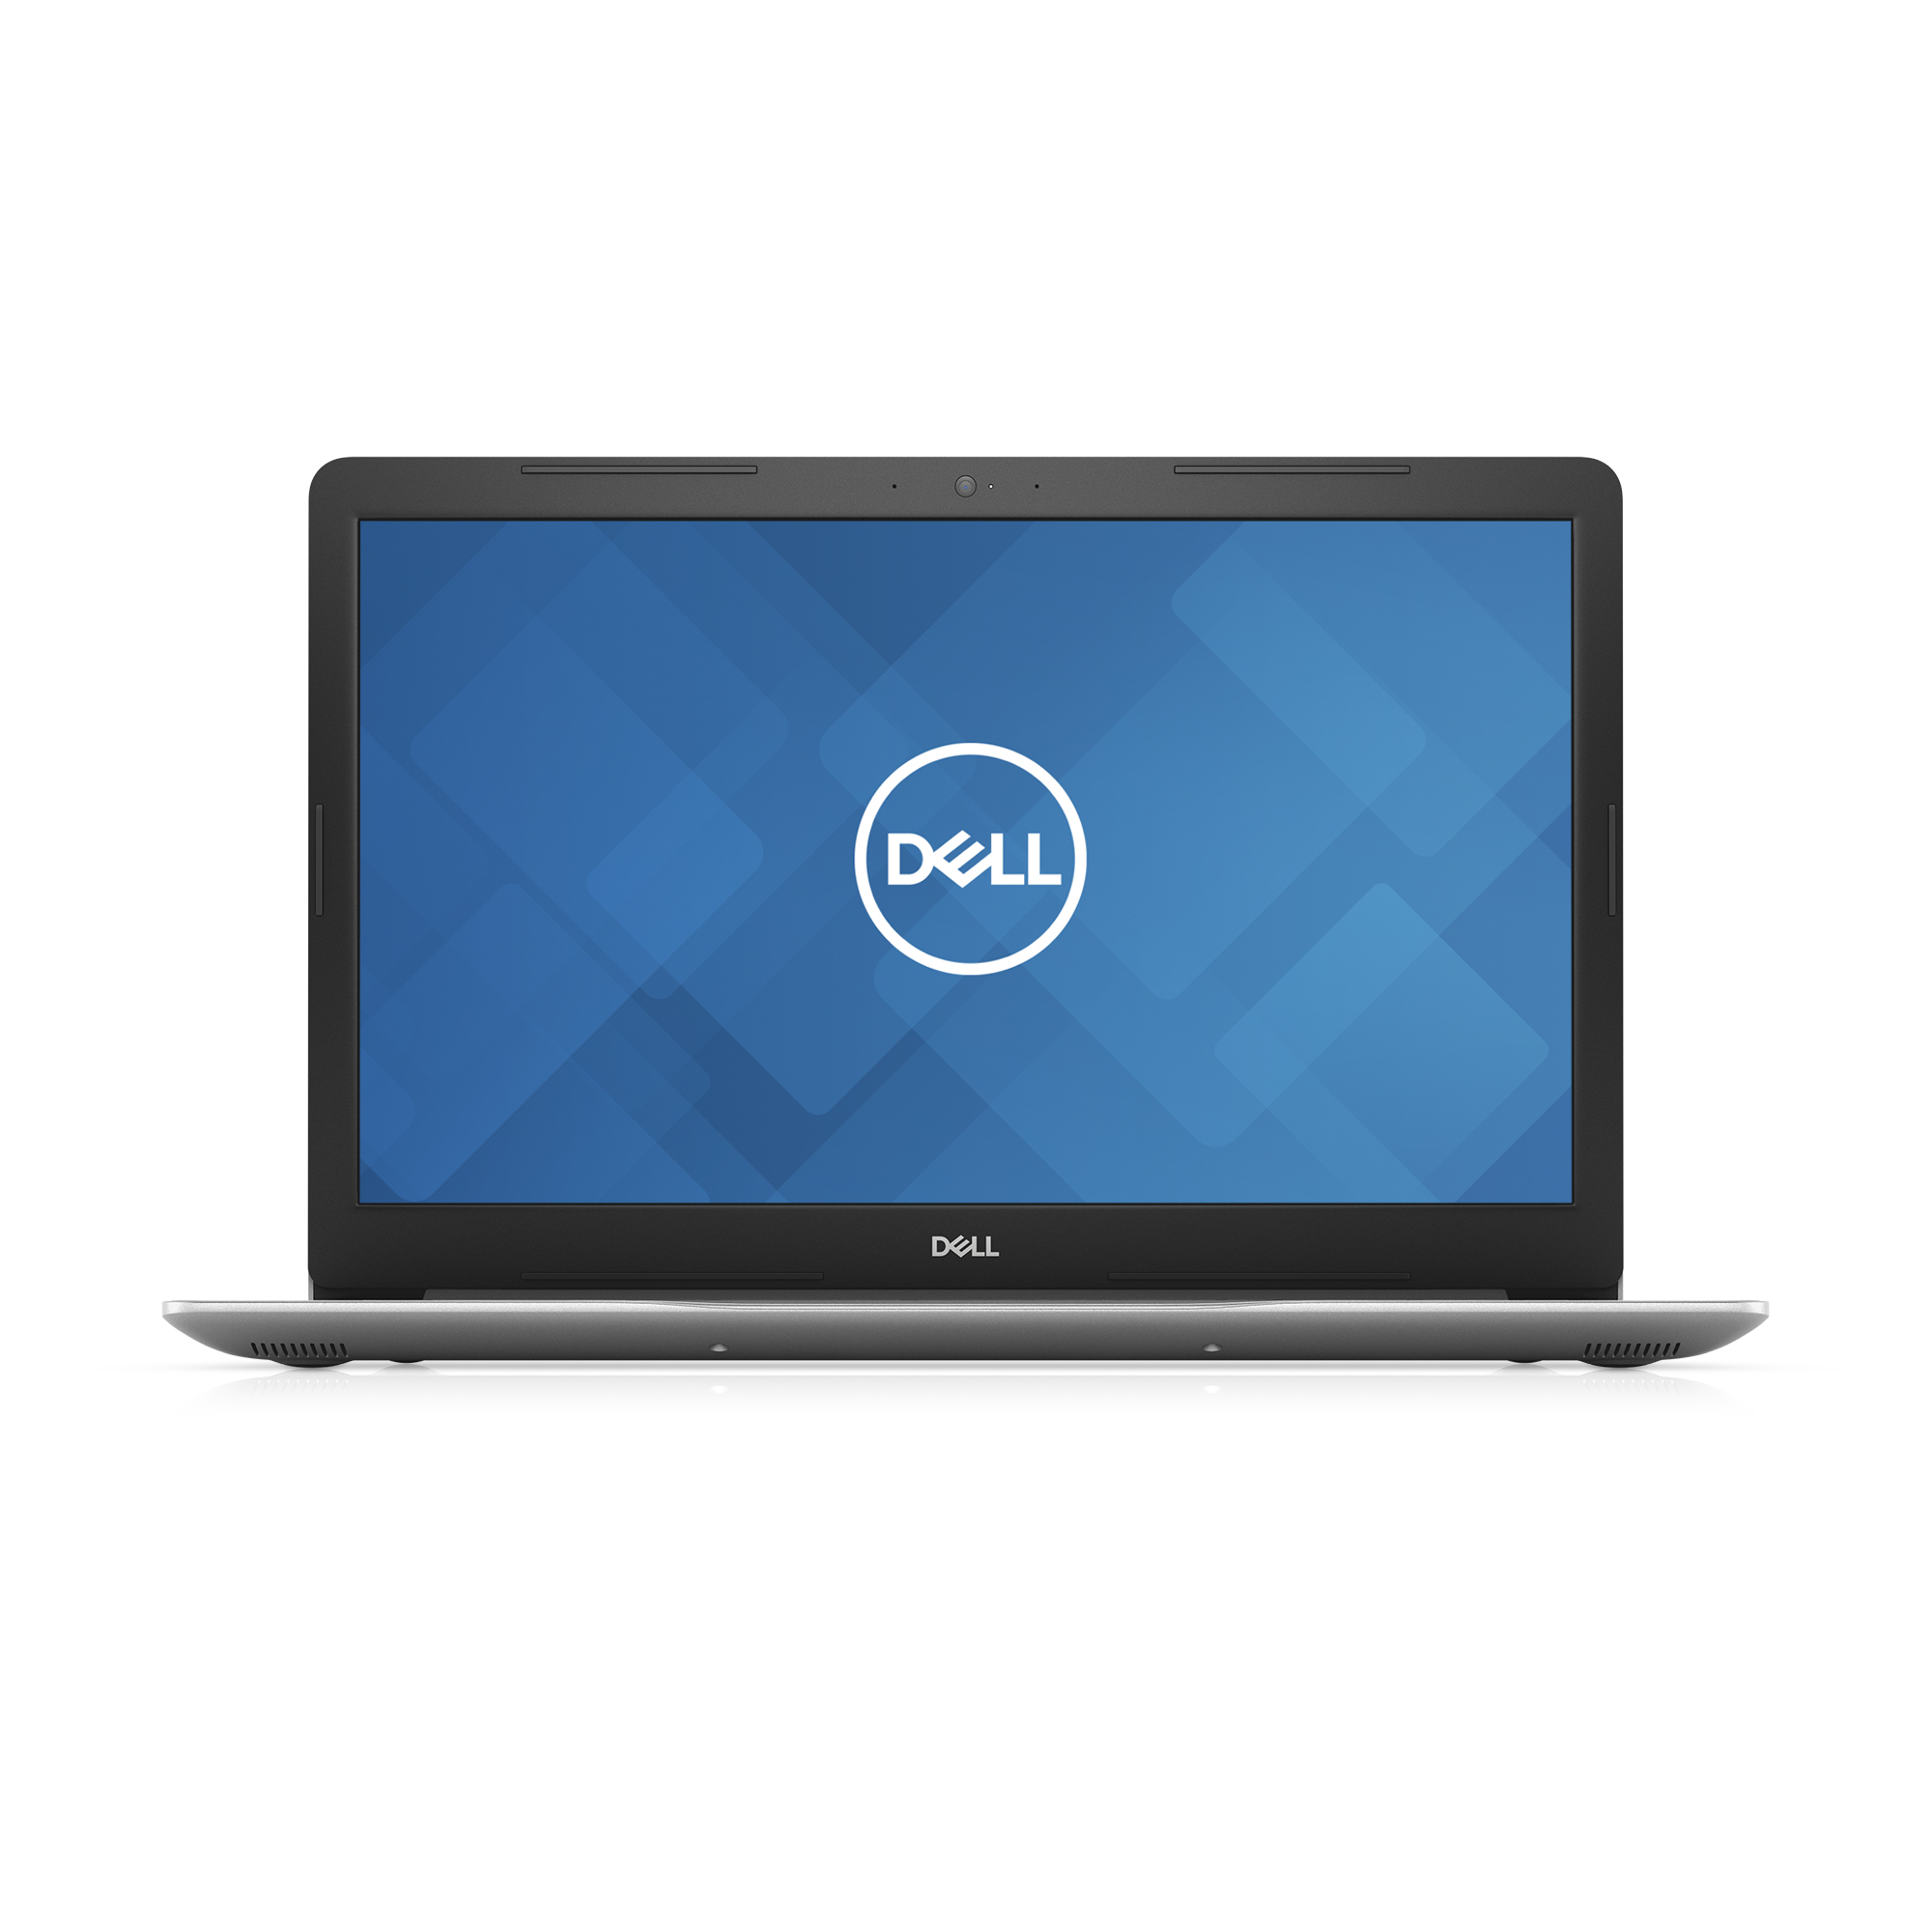 "Dell Inspiron 15 5000 (5575) 15.6"" Laptop (Core Ryzen 7 2700U / 8GB / 1TB)"